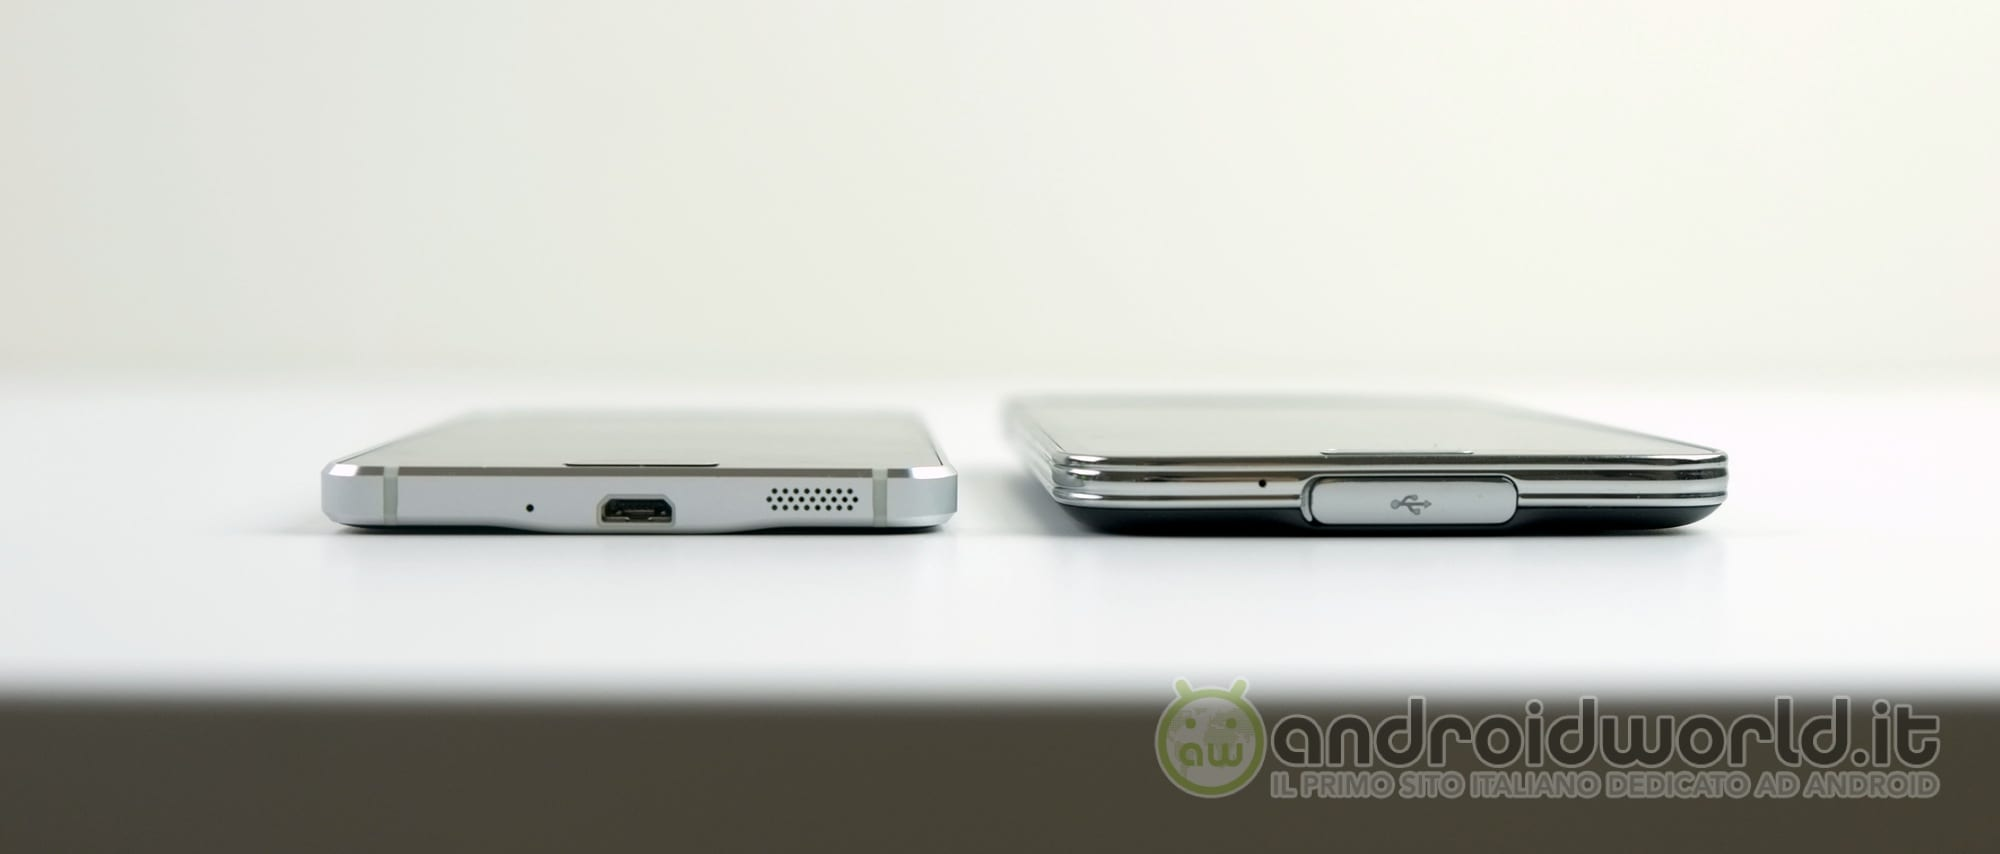 samsung galaxy alpha vs galaxy s5 il confronto foto e